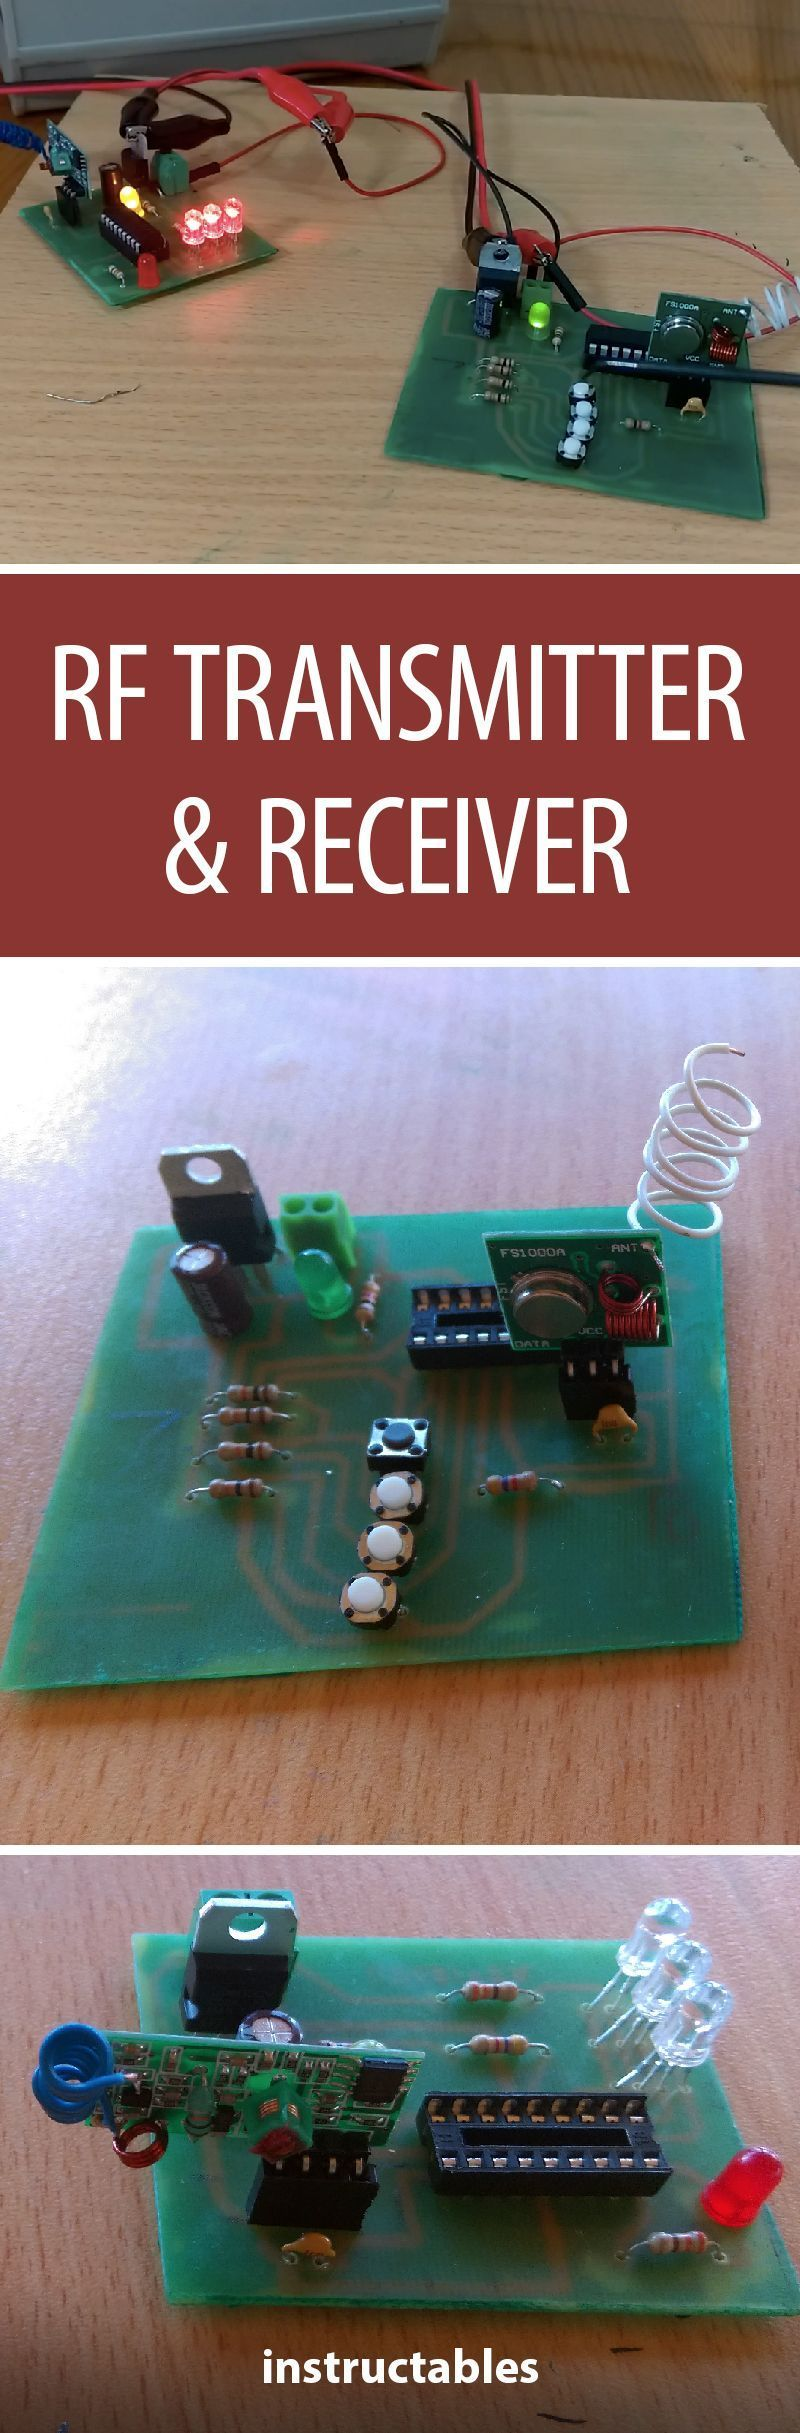 Rf Transmitter And Receiver Diy Pinterest Electronics Projects Project Books To Learn On Learning About Explore Tinkering When You All Radio Waves Building An Radiowaves